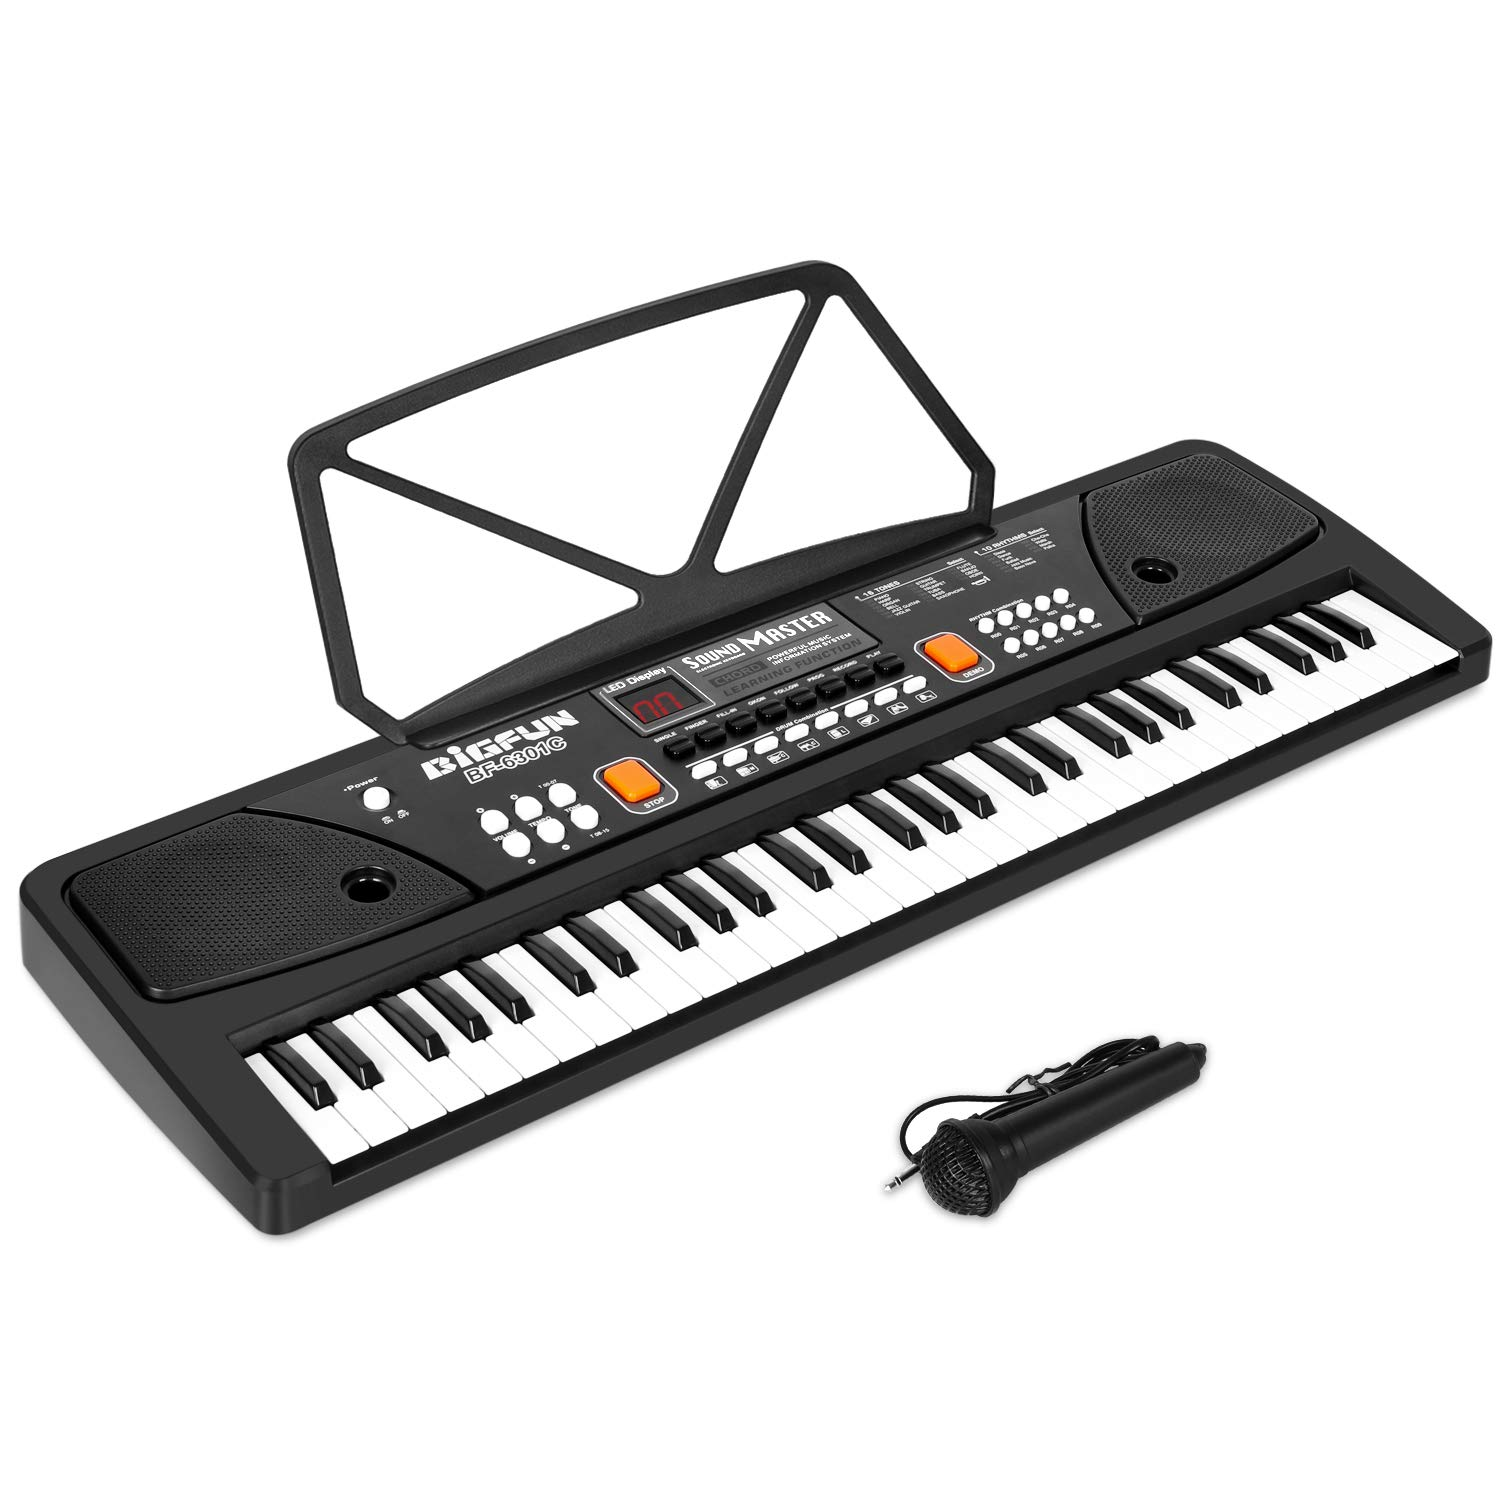 M SANMERSEN Kids Piano, 61 Keys LED Display Piano Keyboard with Microphone AUX-in Jack Musical Instrument with Music Book Bracket First Piano Gifts for 3-12 Years Old Boys Girls